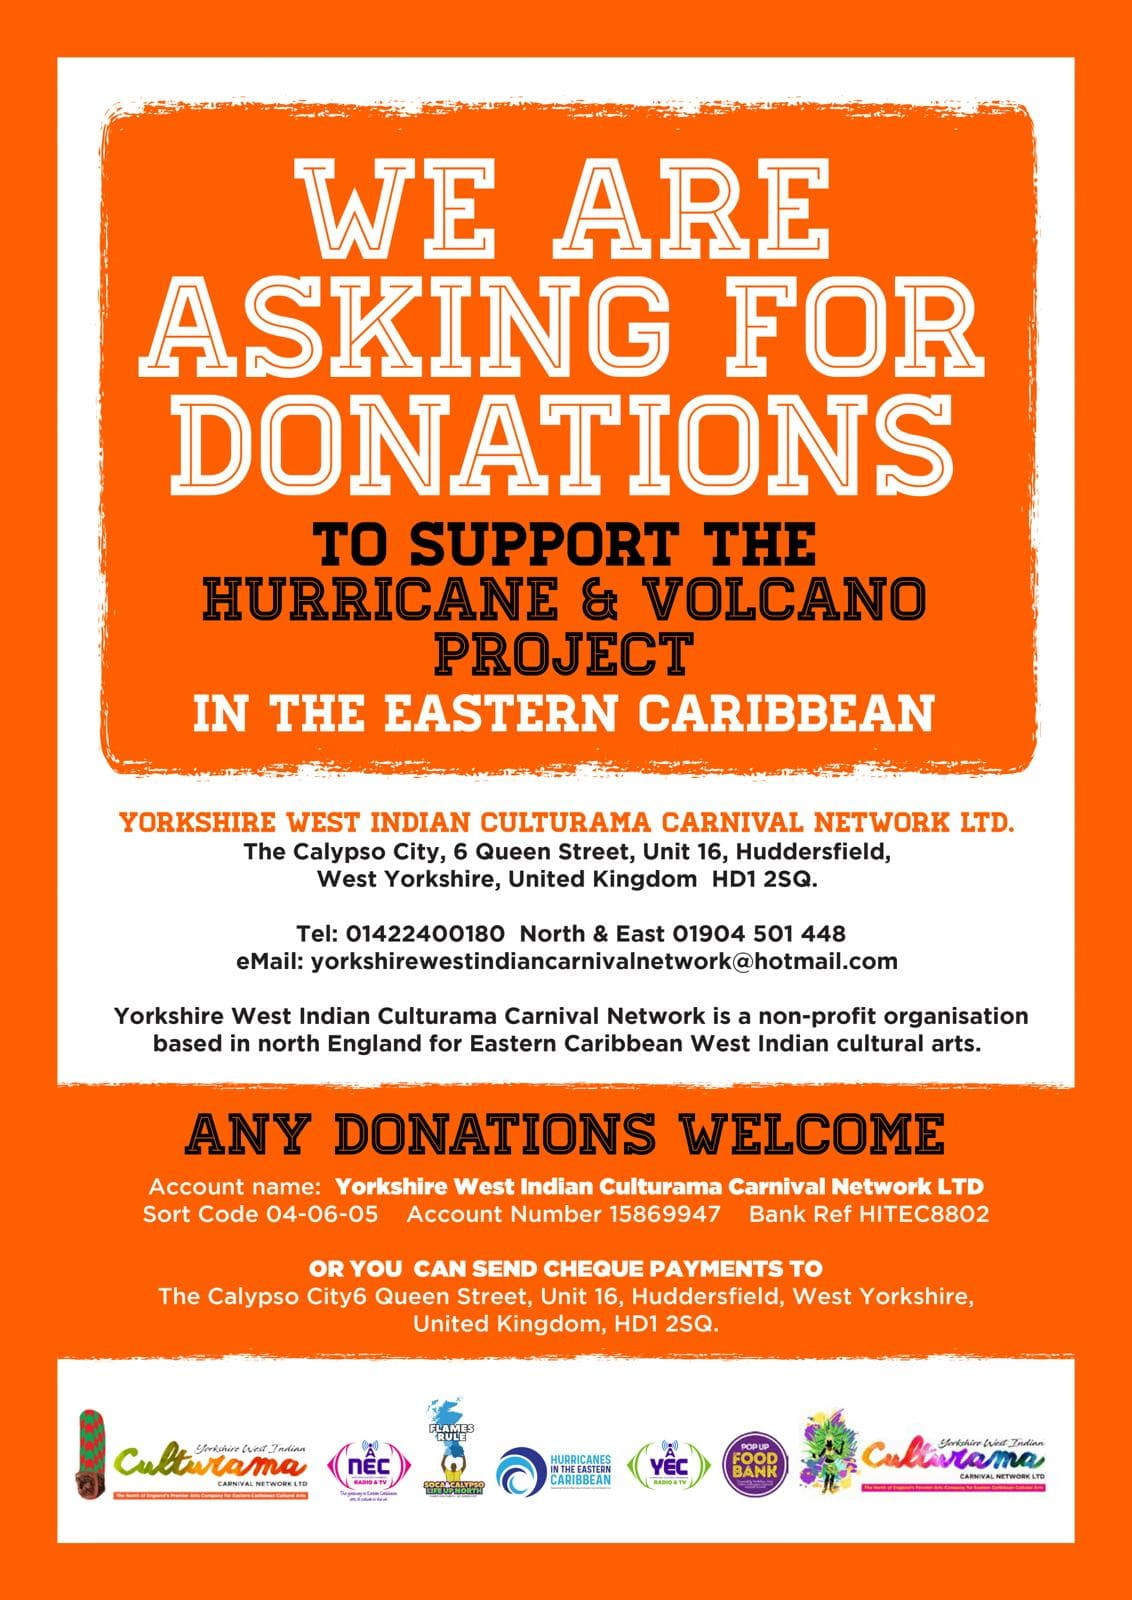 YWICCN Hurricane Support Project